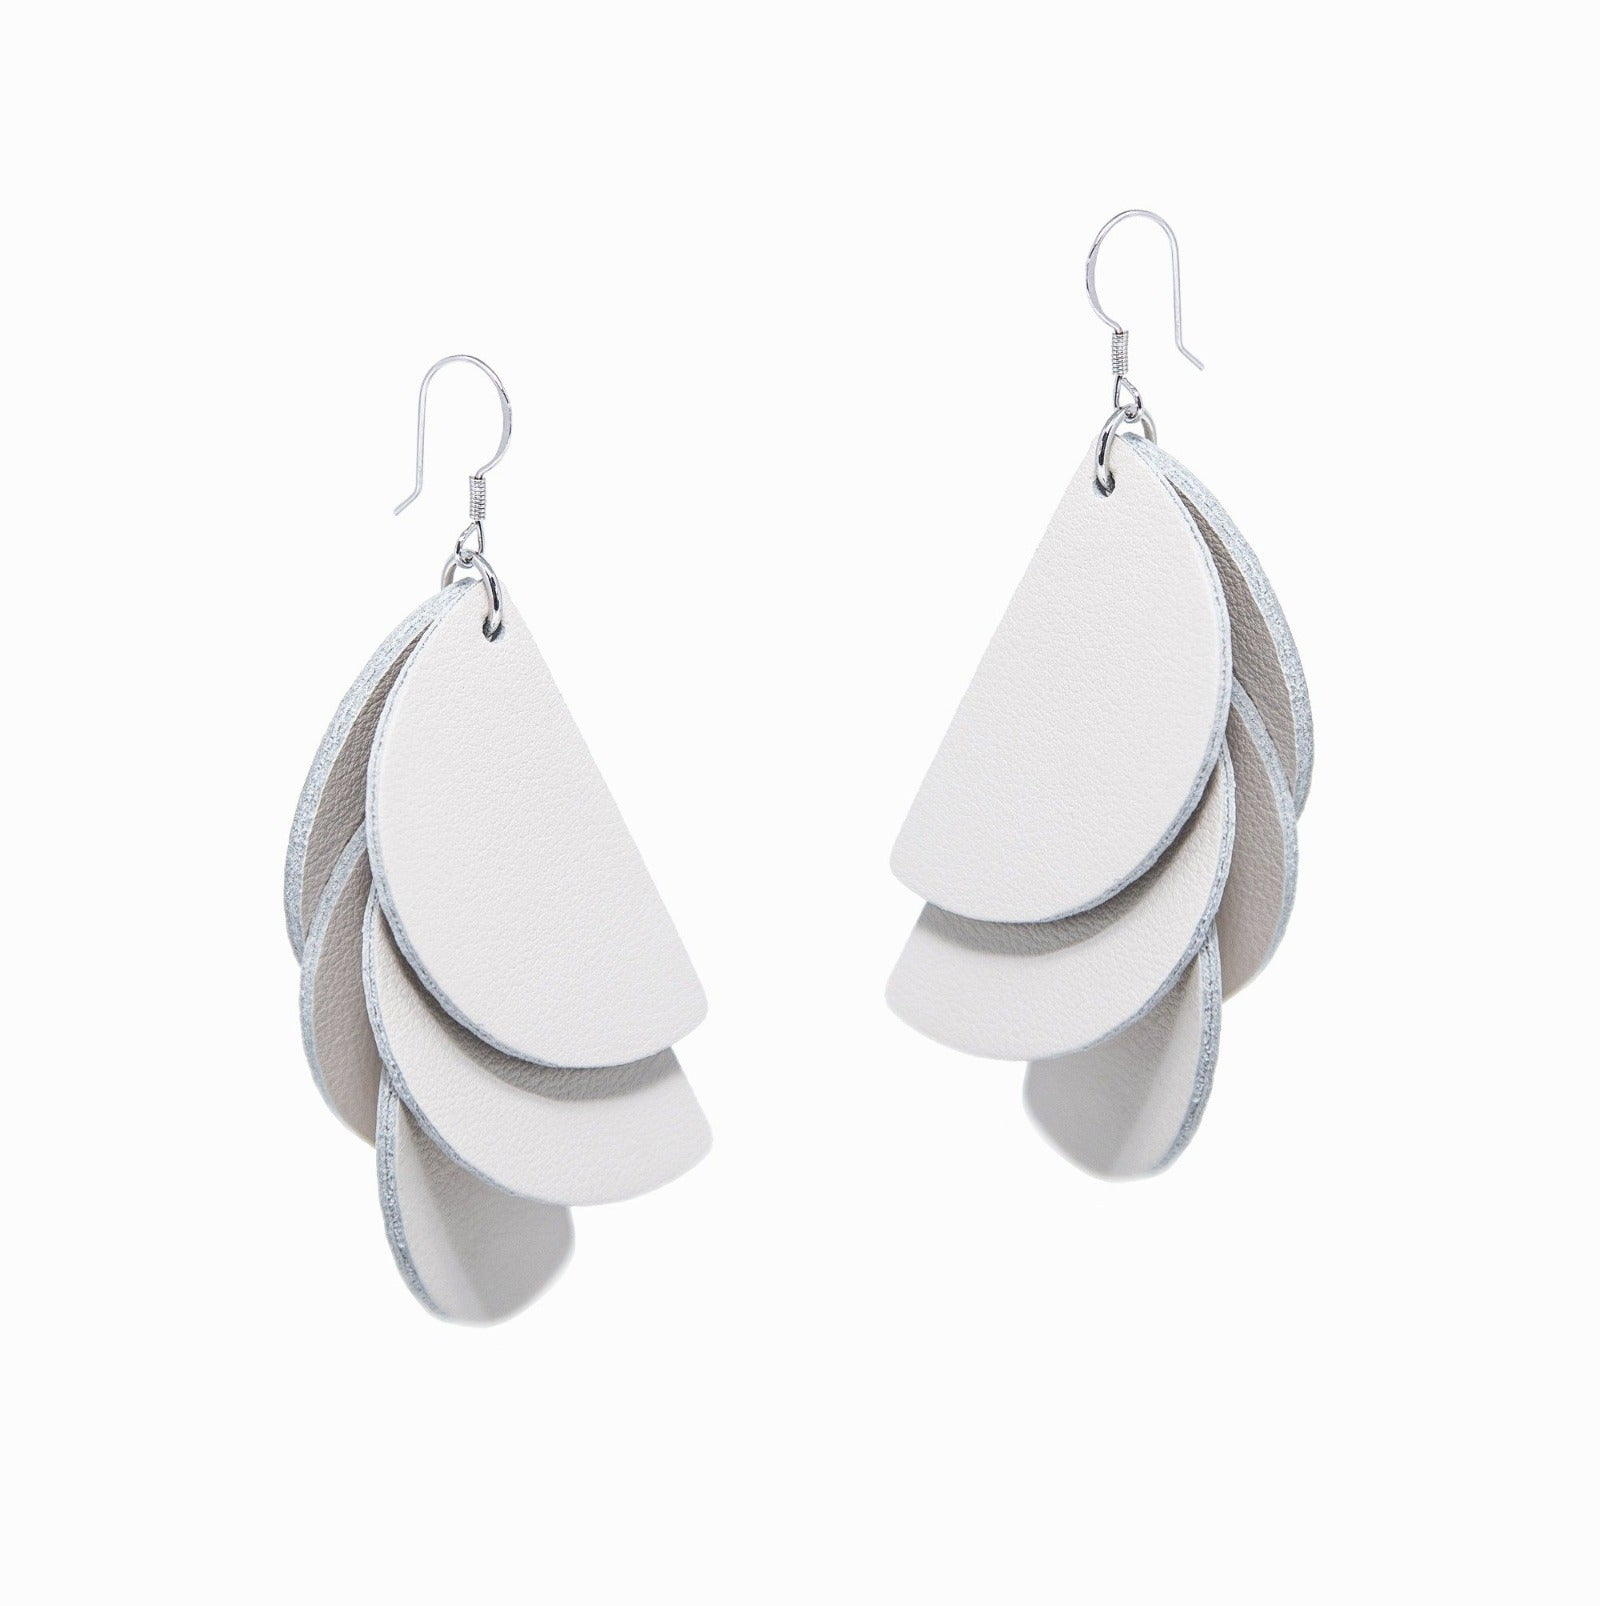 Madeline Earrings | Ivory - A R A M L E E ®